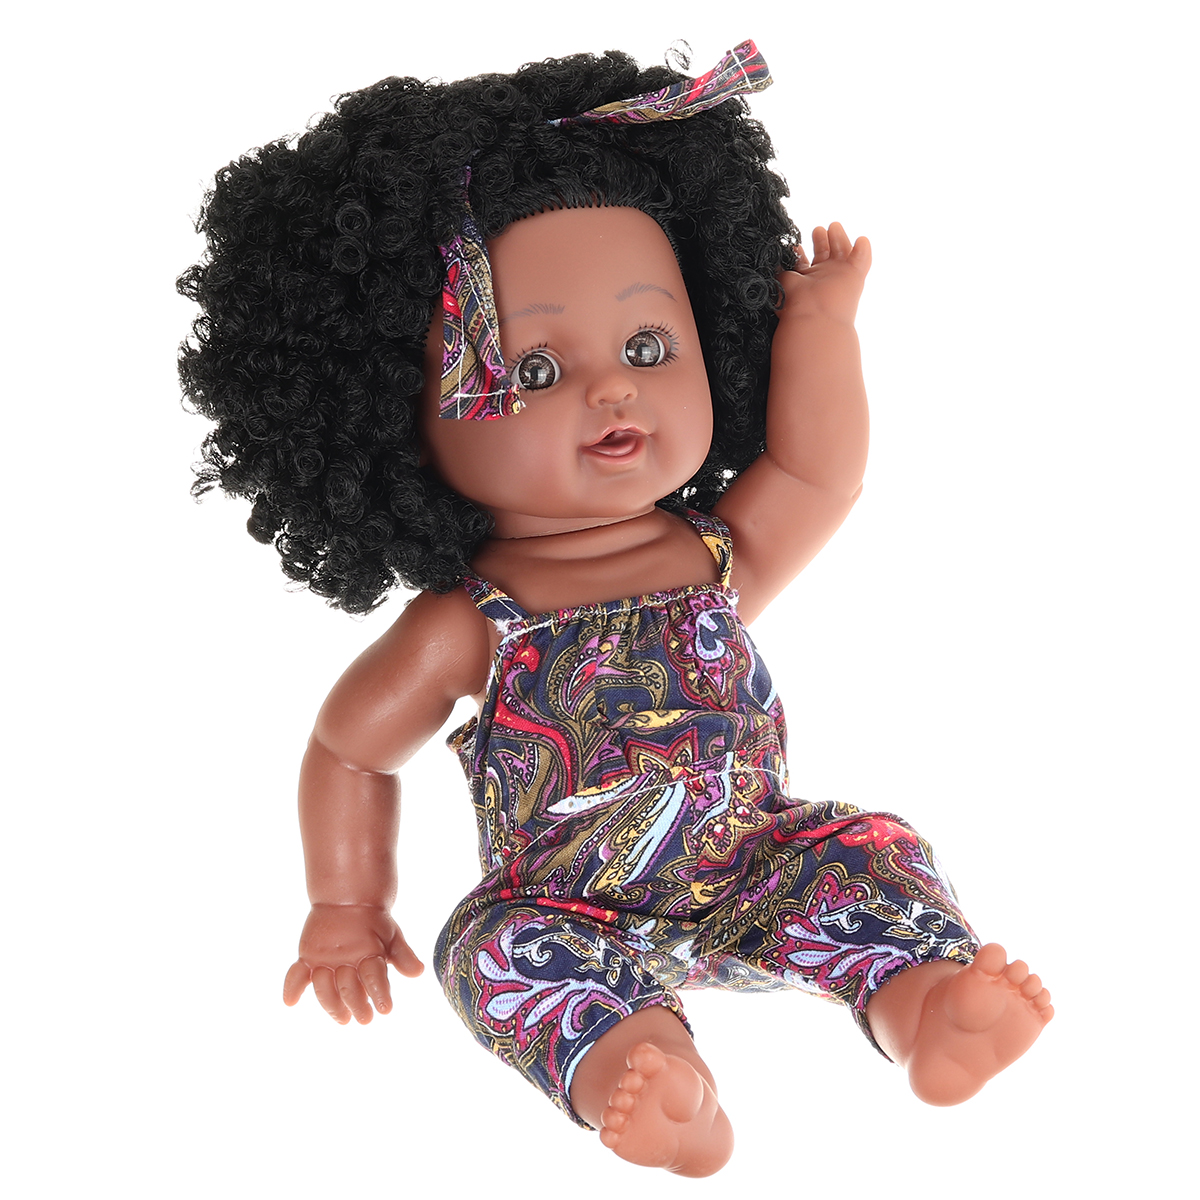 12Inch Soft Silicone Vinyl PVC Black Baby Fashion Play Doll Rotate 360° African Girl Perfect Reborn Doll Toy for Birthday Gift - Photo: 5